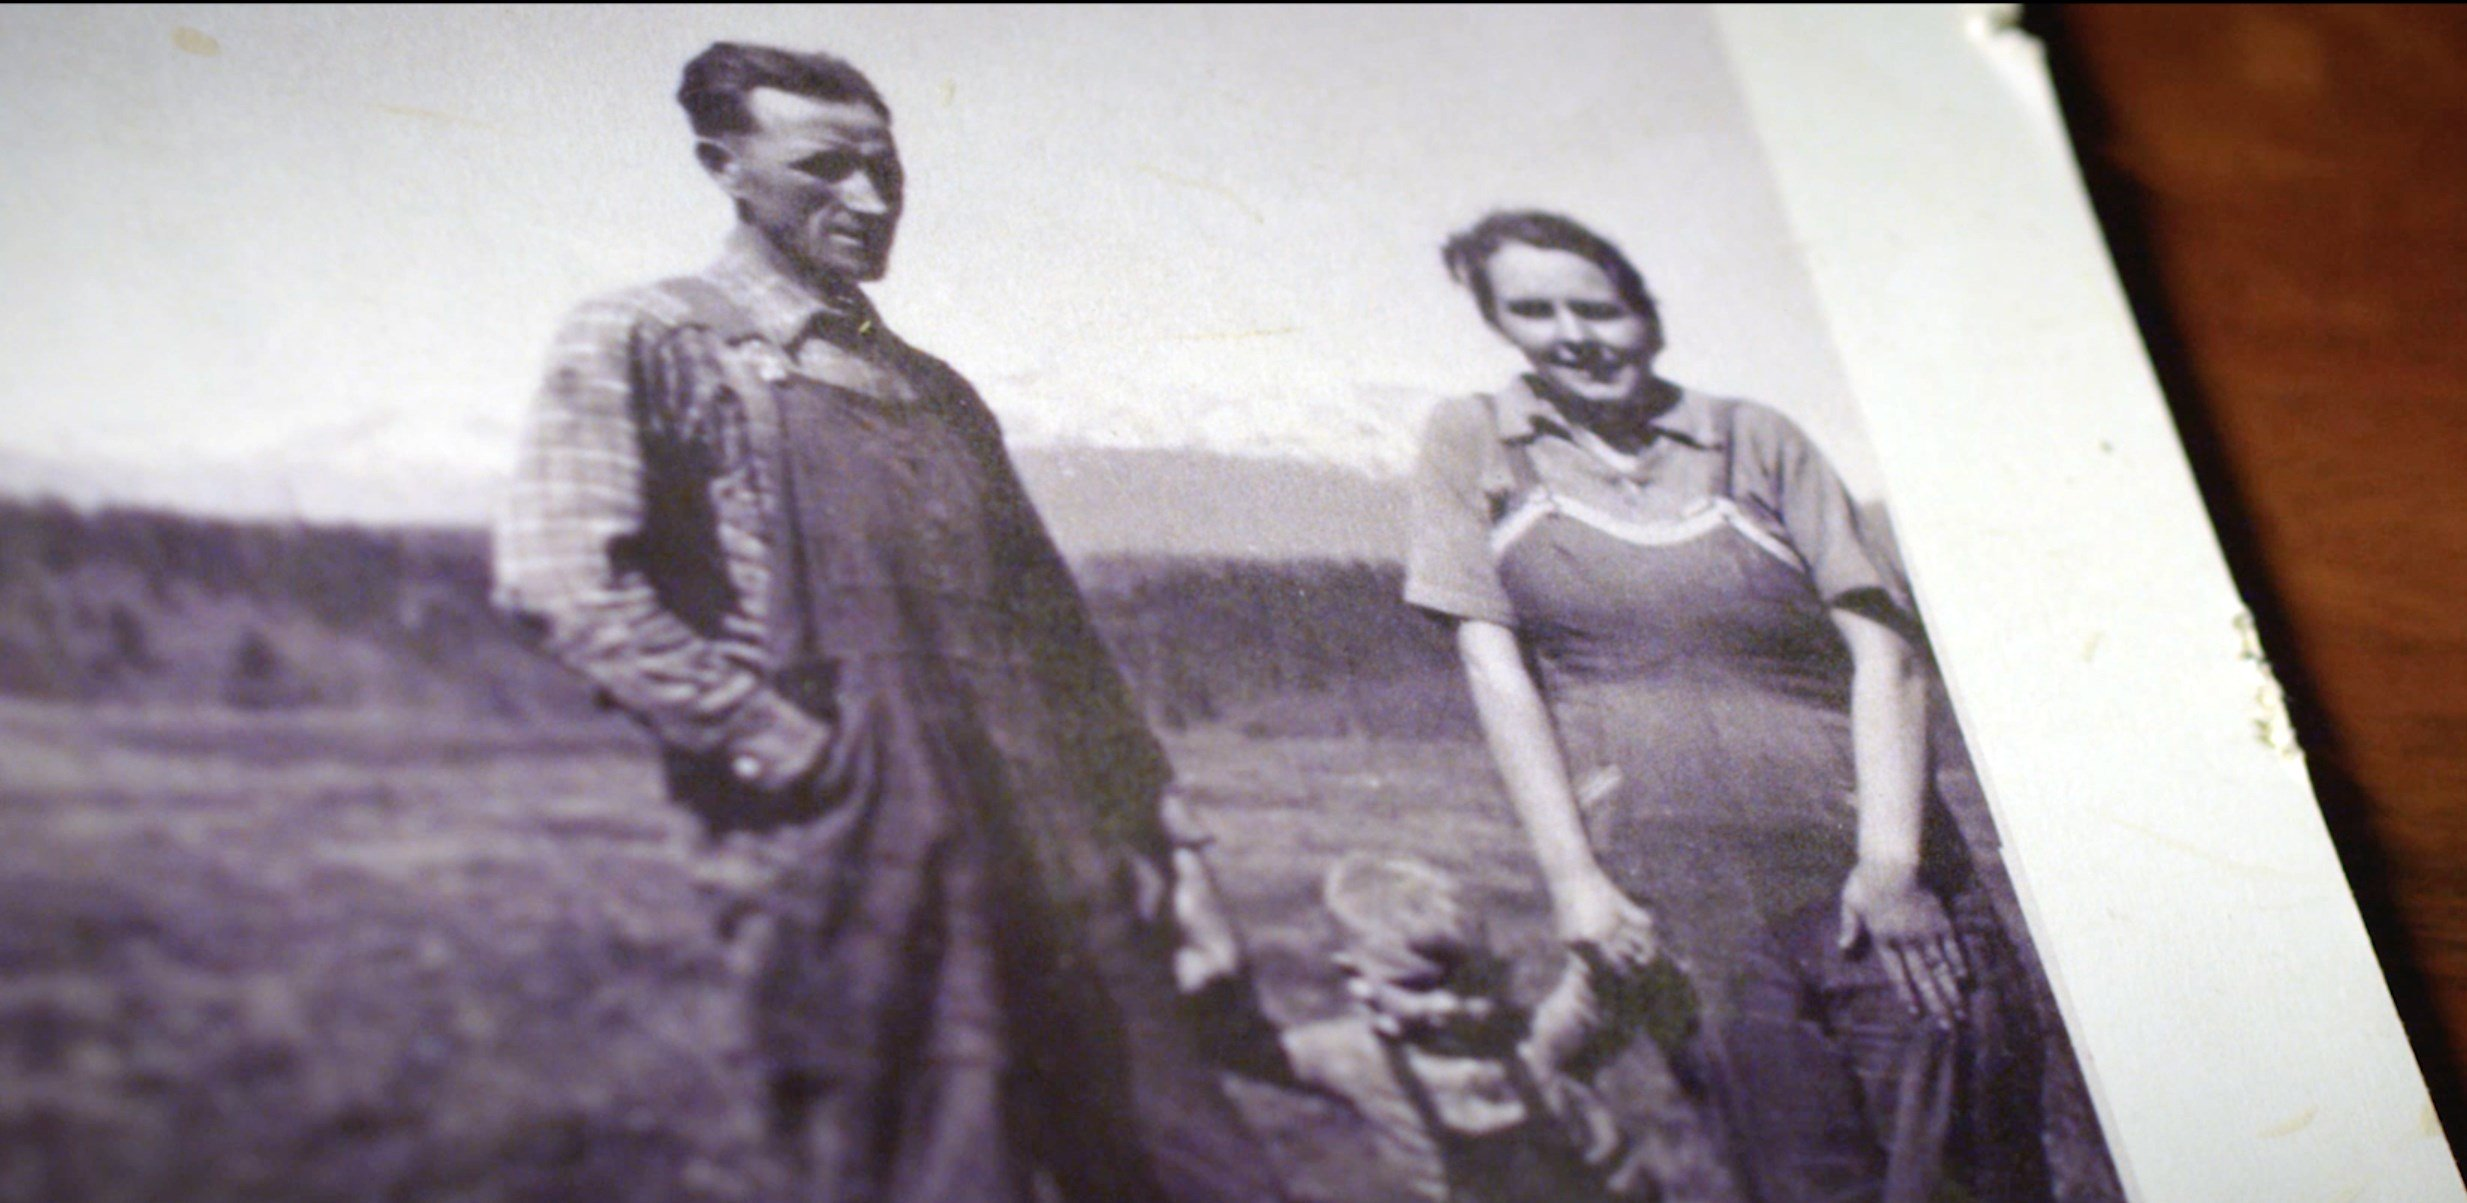 Dean Folkvord's Grandparents on their dairy farm outside Helena, MT.